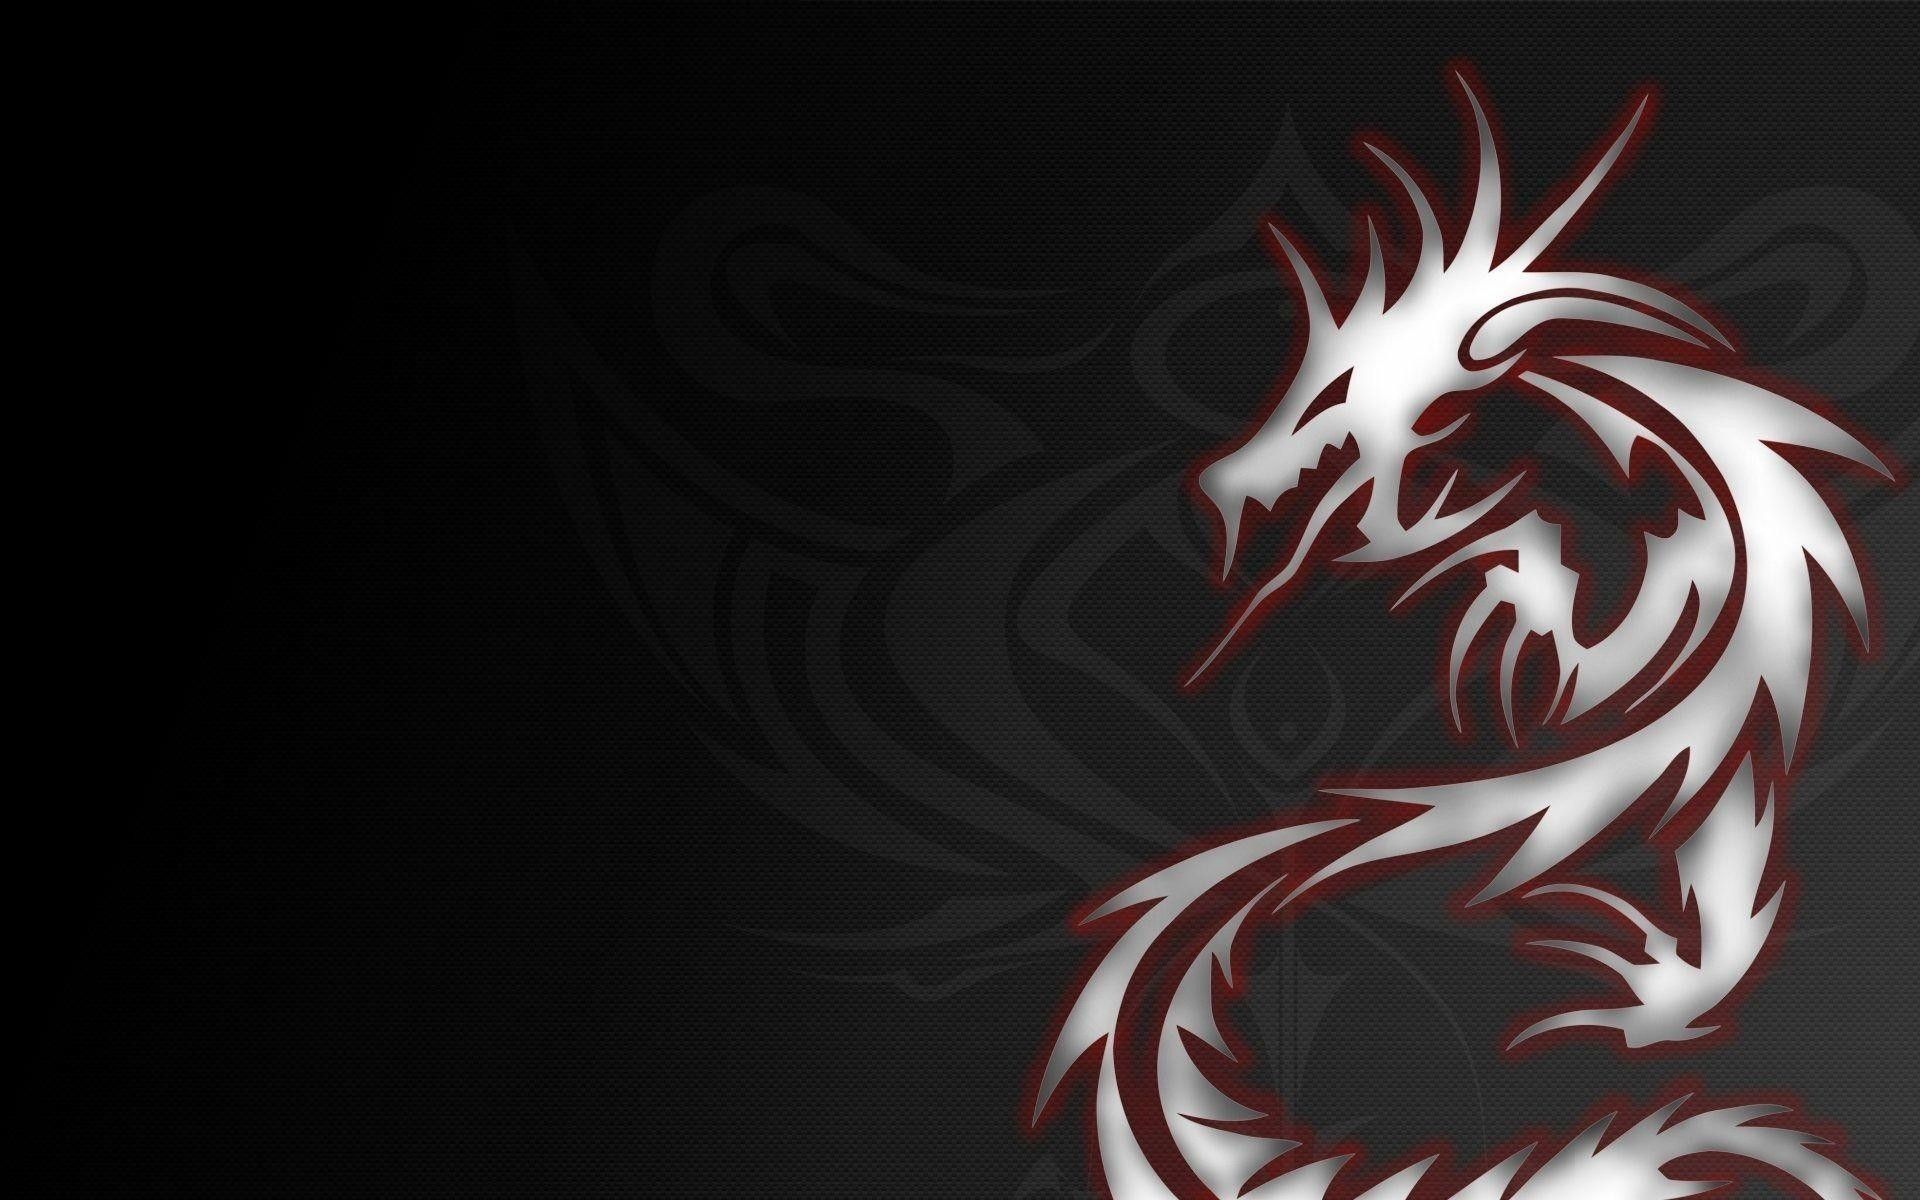 Dragon Tattoos Wallpaper Desktop Dragon Tattoos Dragon Tattoo